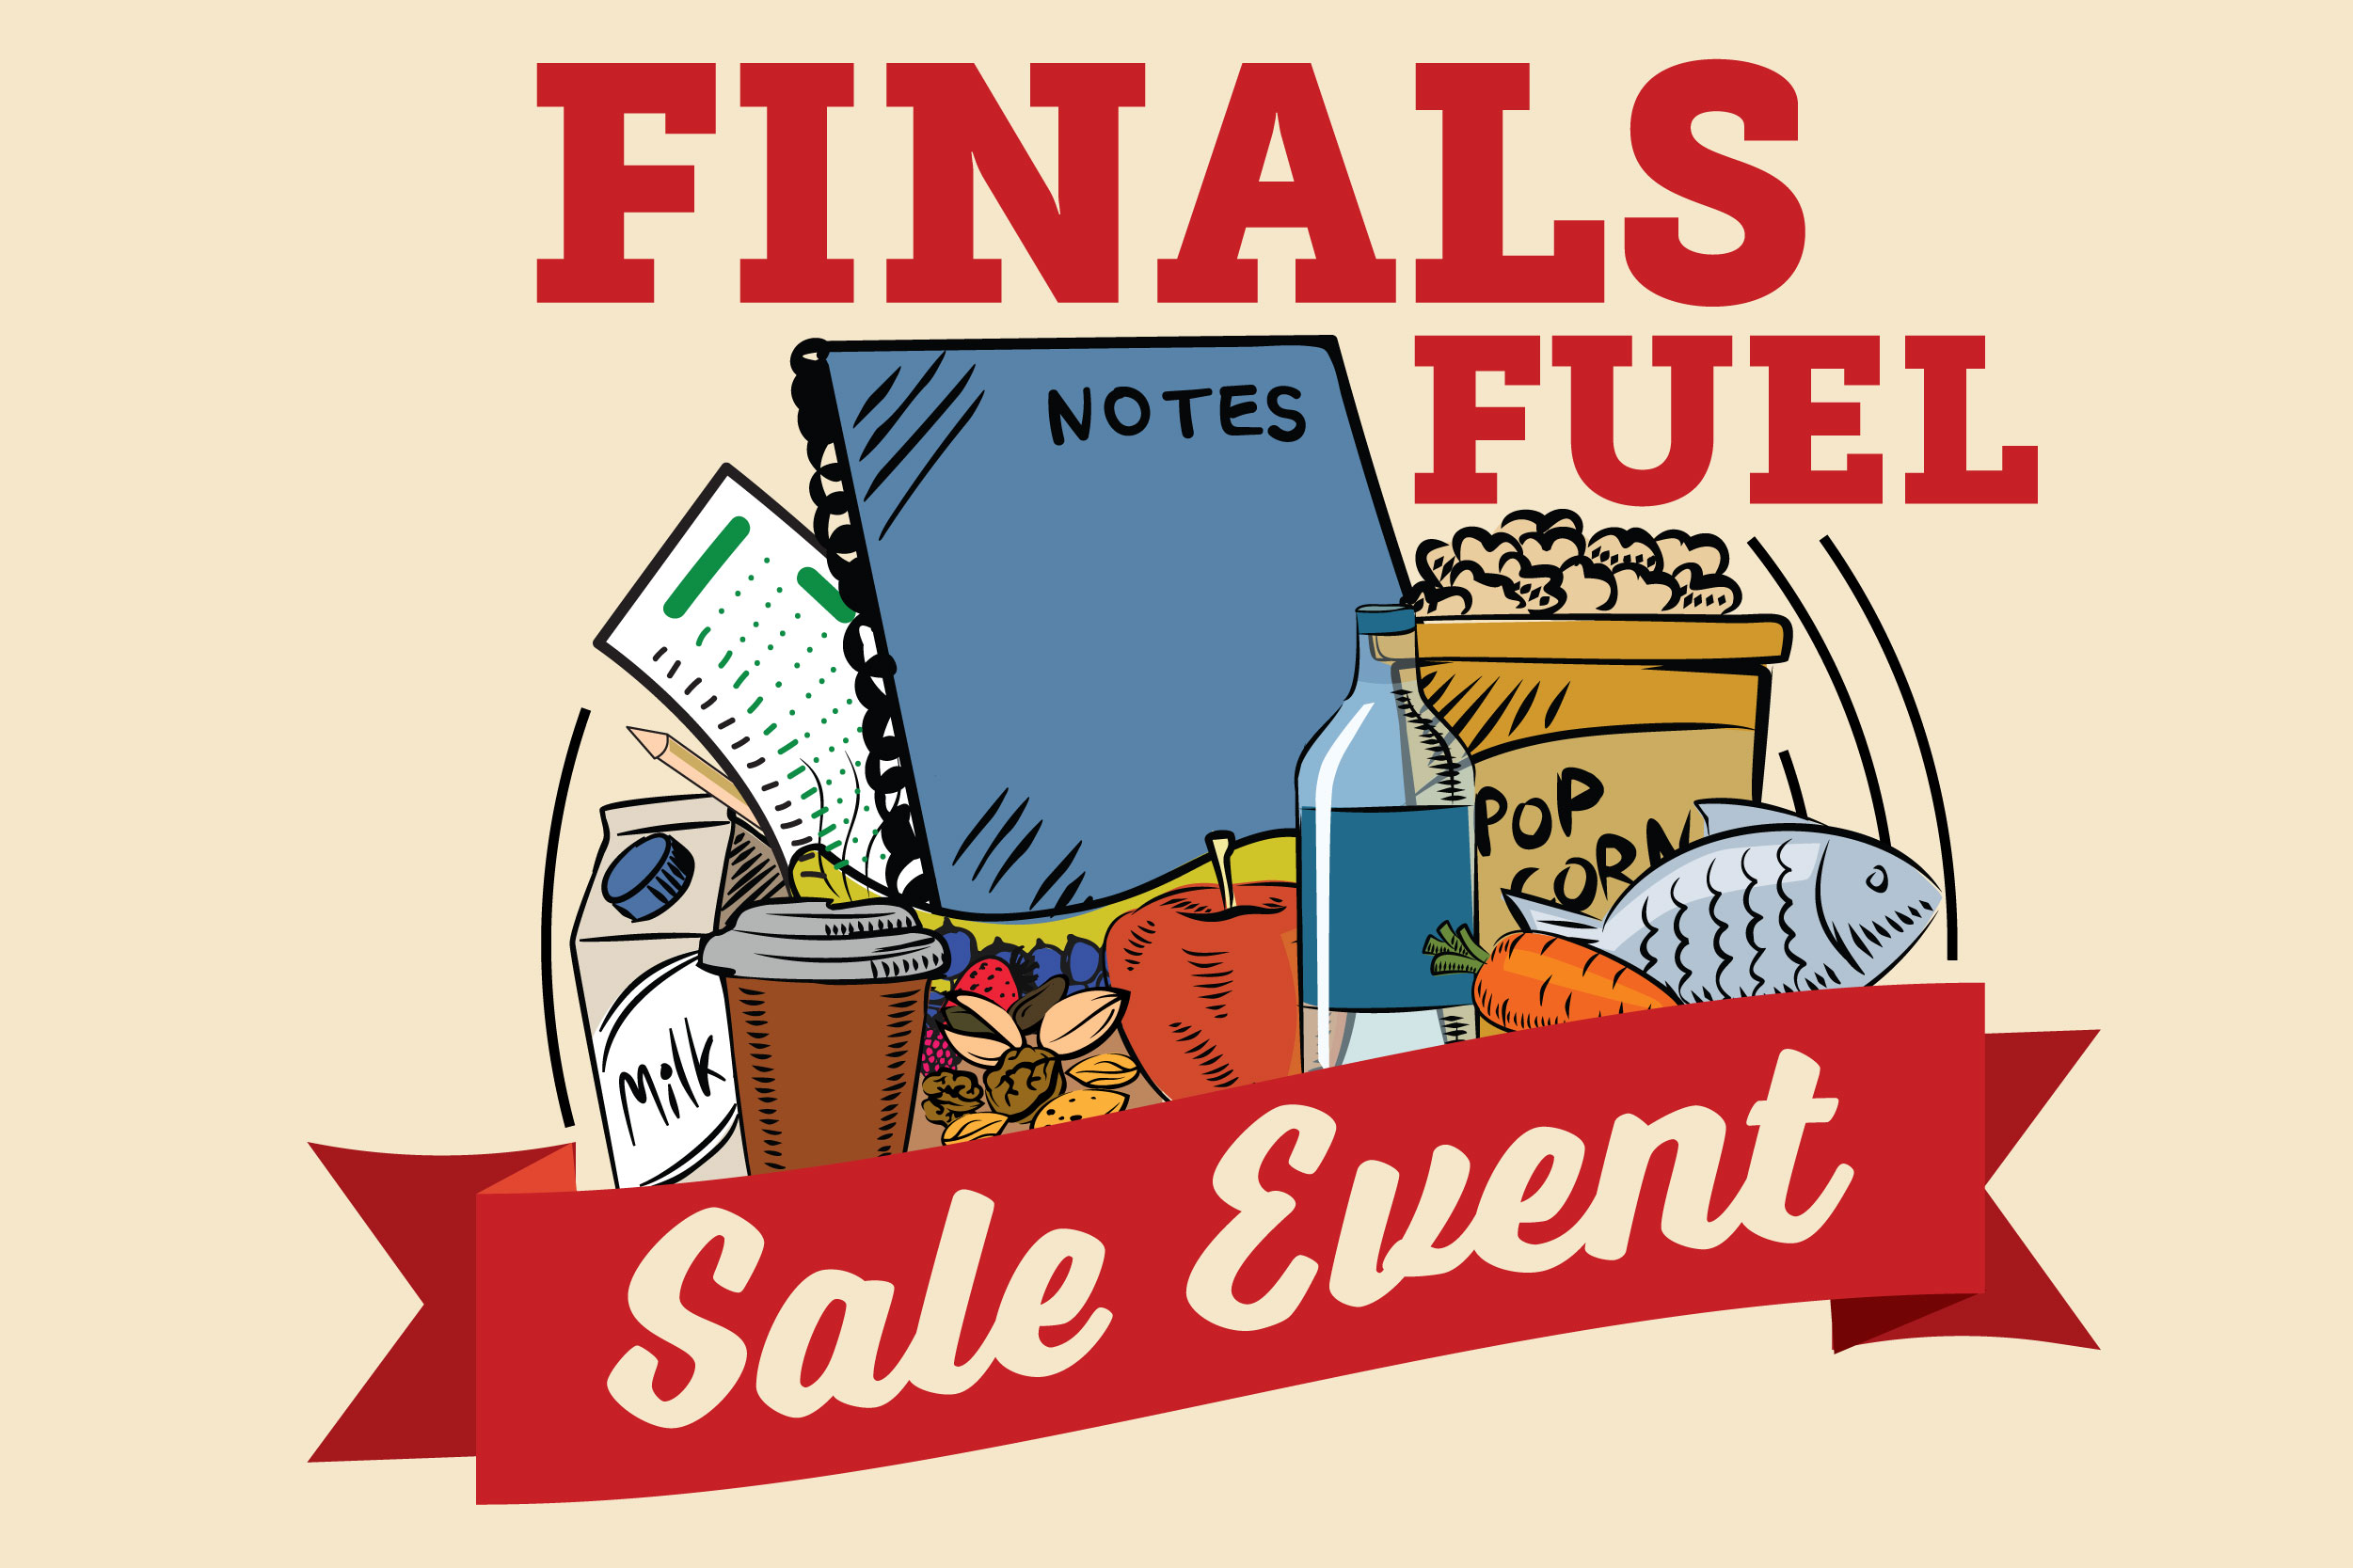 Finals-Fuel-download-here-image